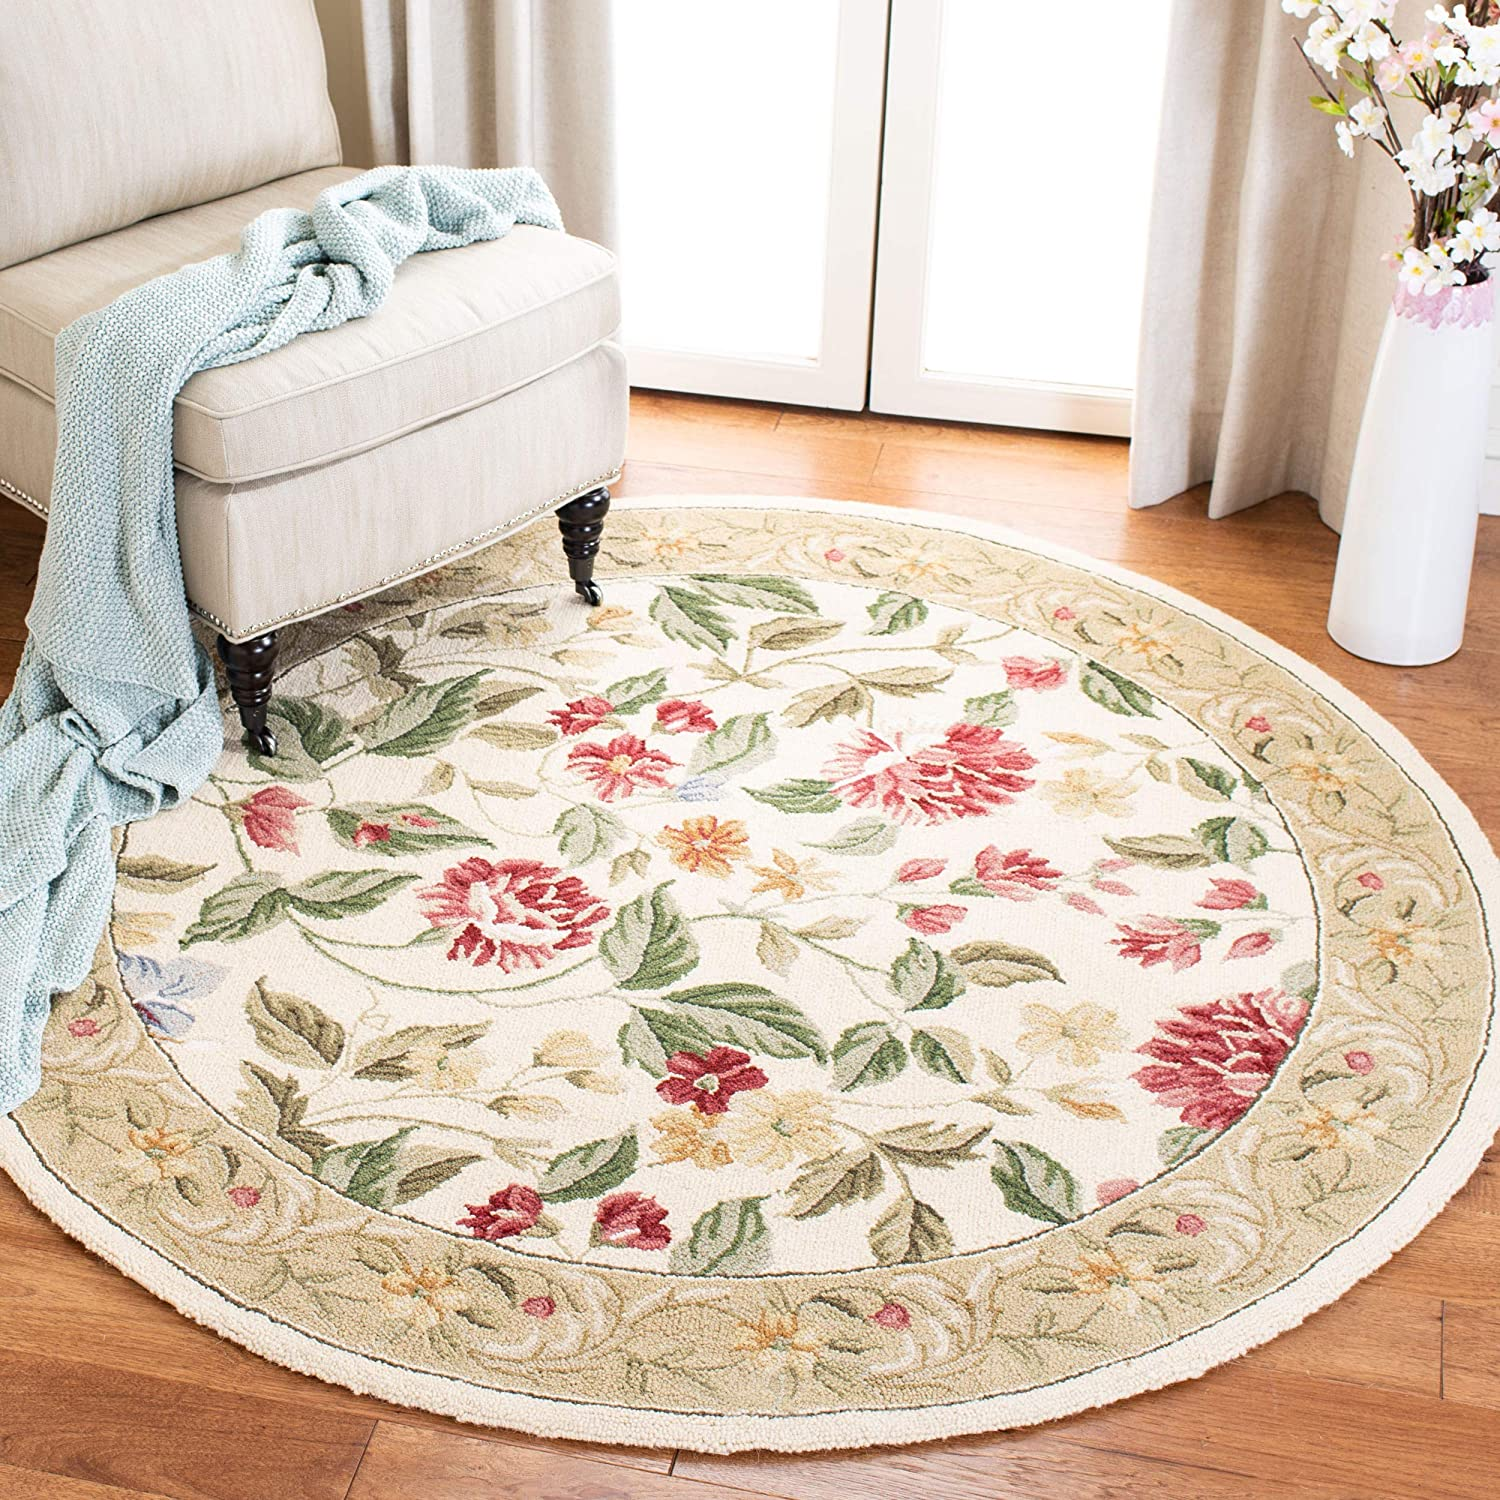 Safavieh Chelsea Collection Hk117a Hand Hooked French Country Wool Area Rug 8 X 8 Round Ivory Beige Furniture Decor Amazon Com